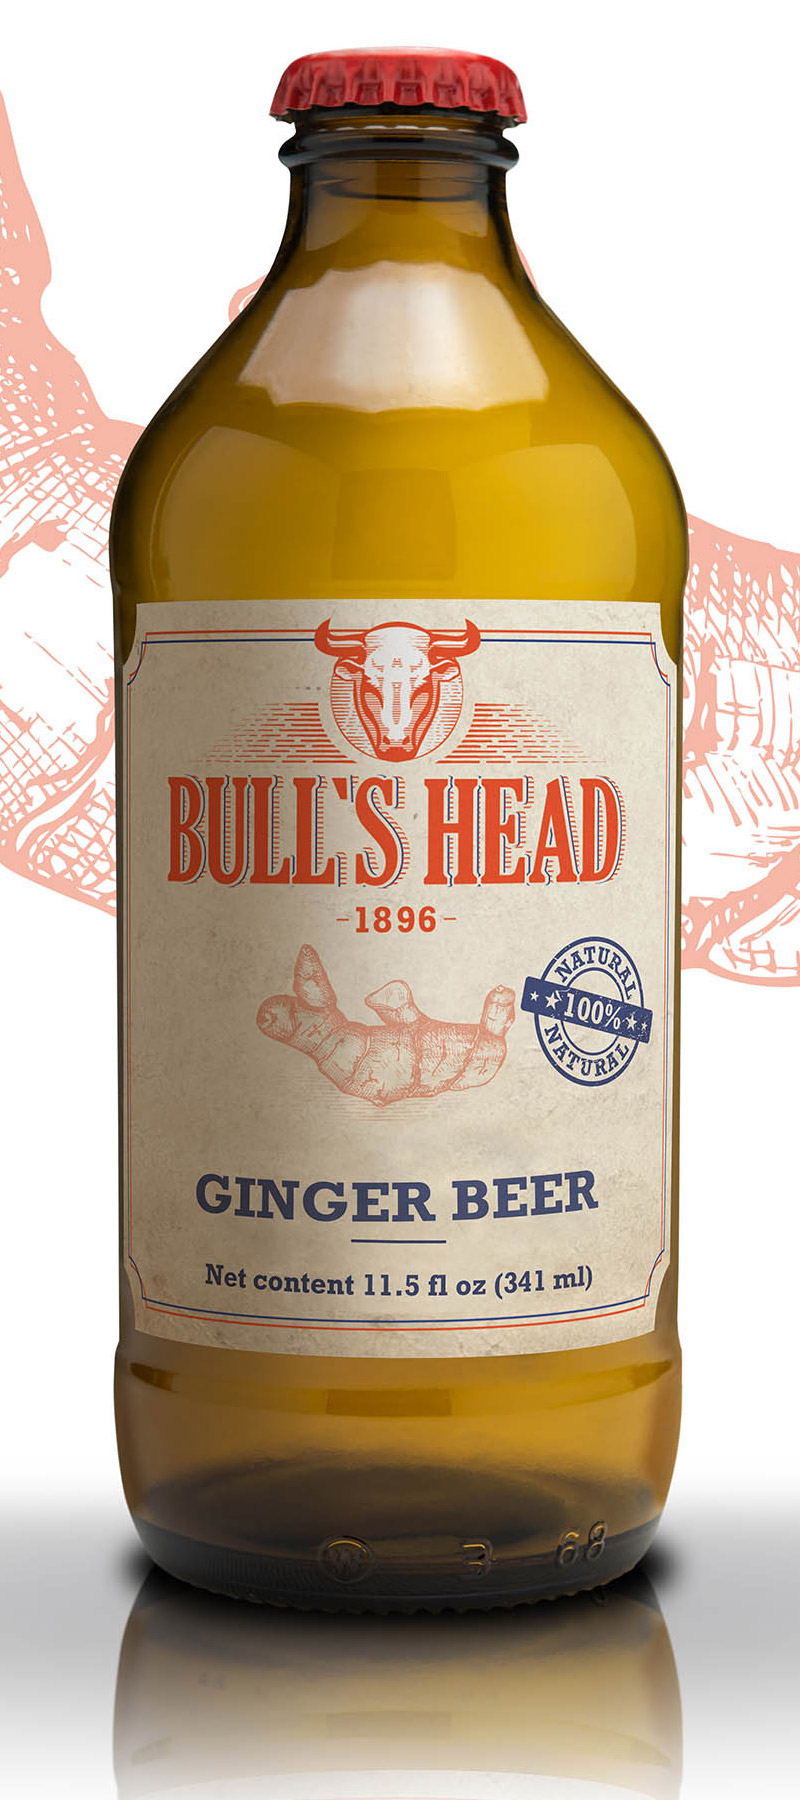 Bière de Gingembre 341 mL*_*Ginger Beer 341 mL*_*Cerveza de Jengibre 341 mL